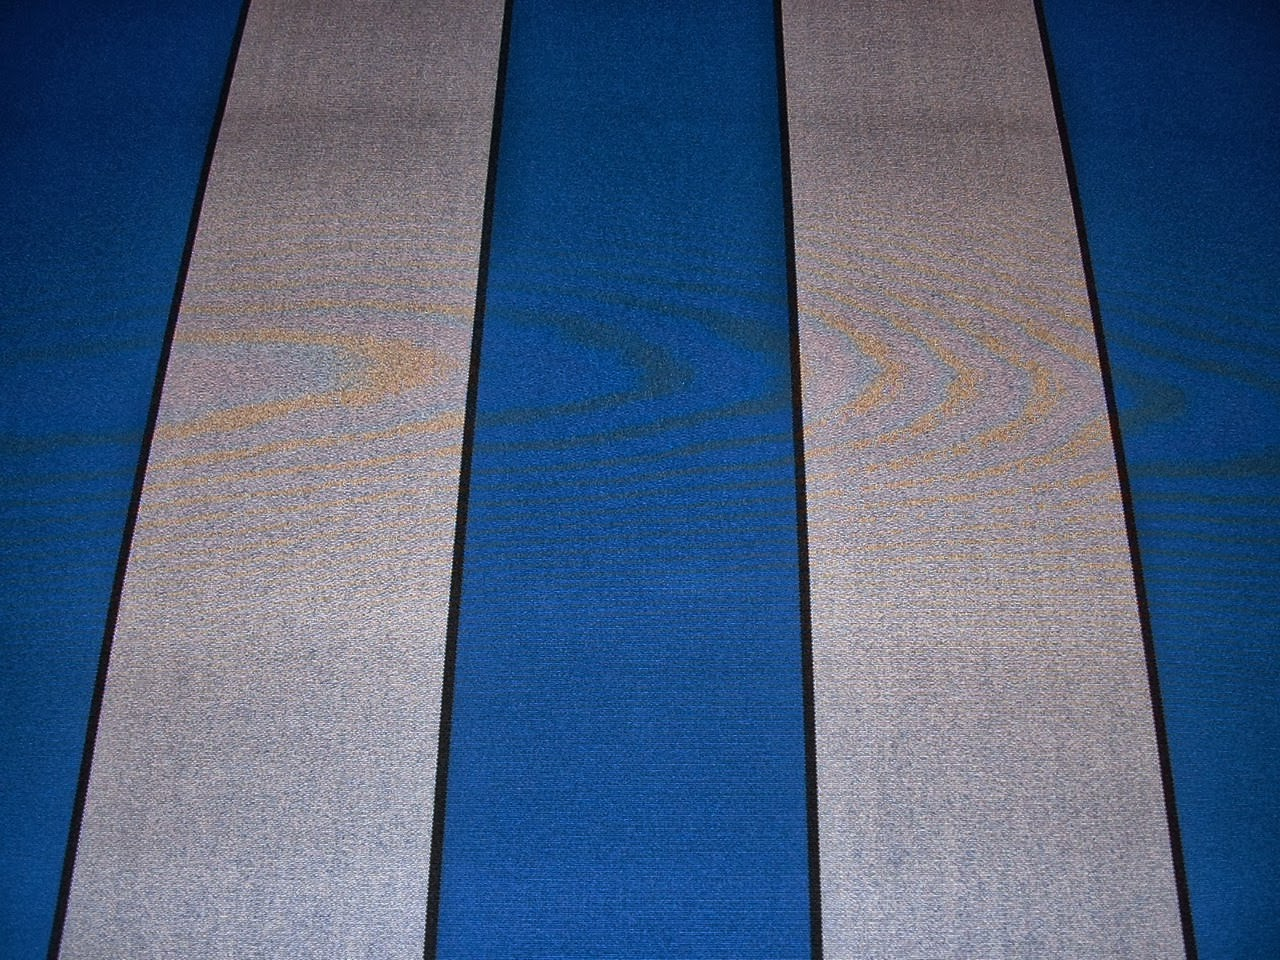 Vintage Awnings Striped Sattler Awning Fabric Has Arrived